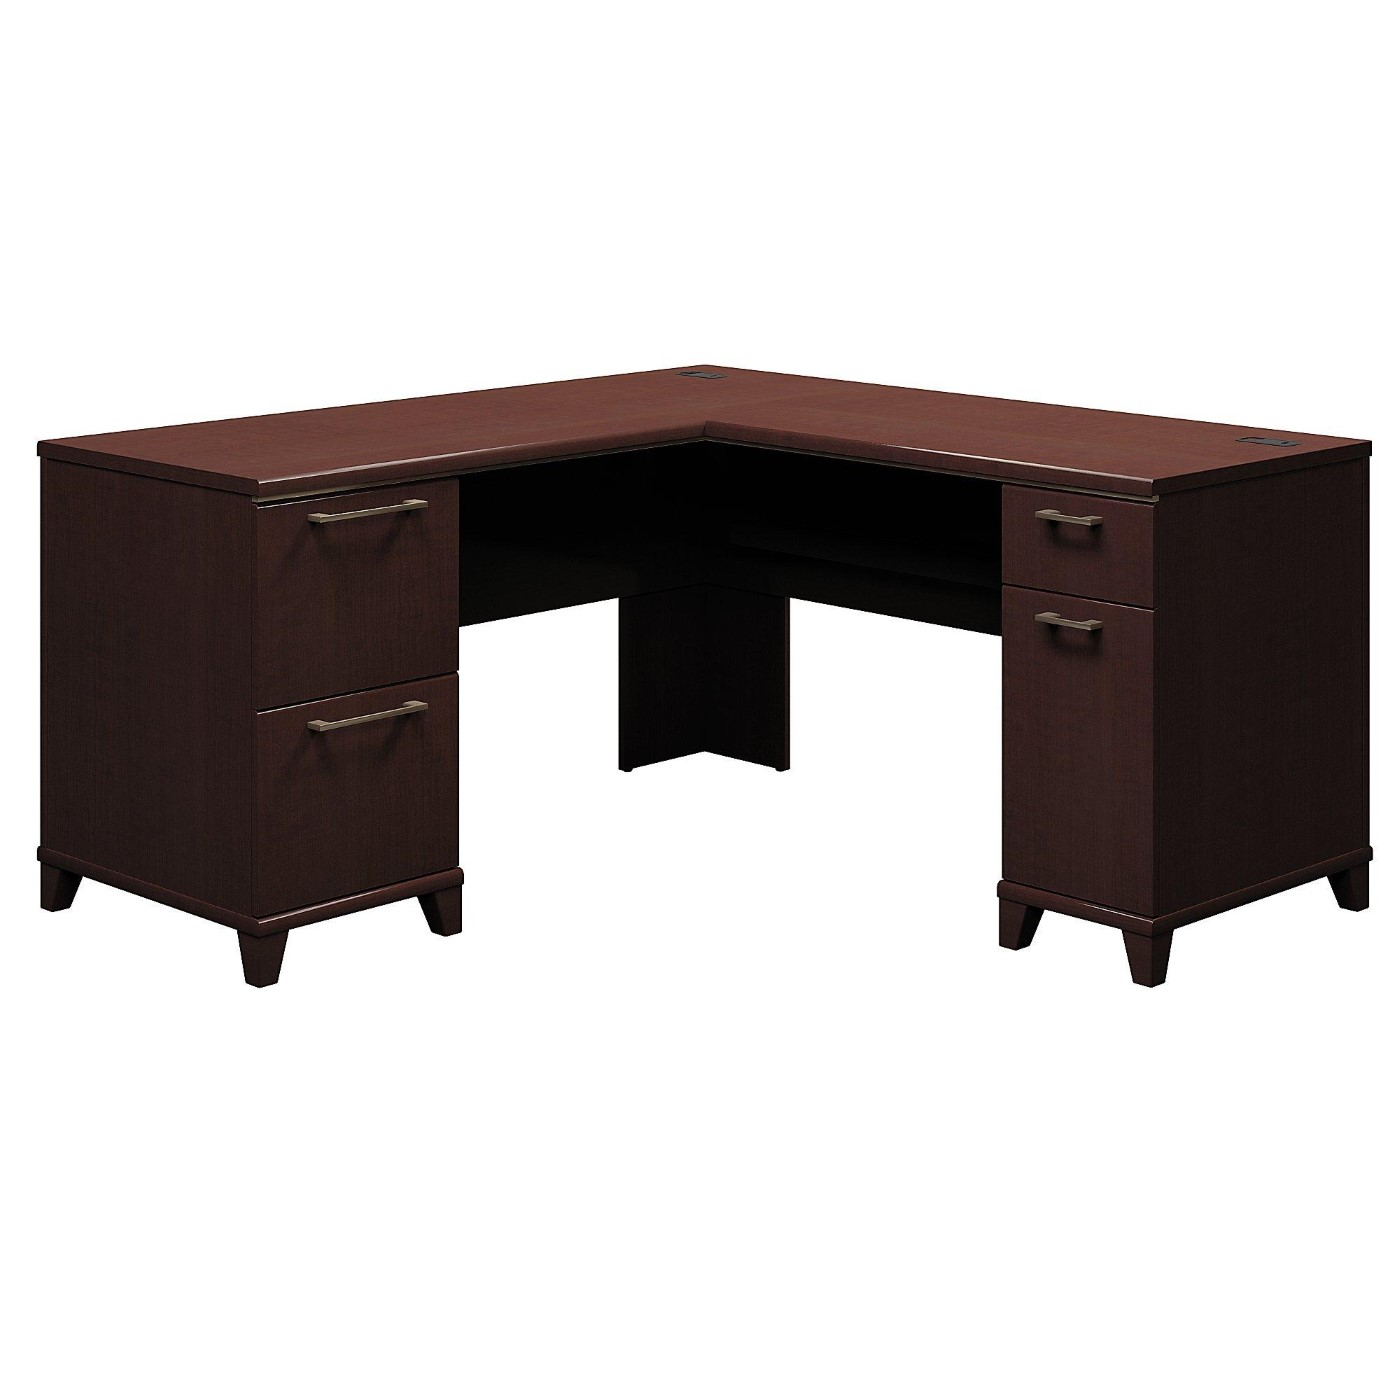 BUSH BUSINESS FURNITURE ENTERPRISE 60W X 60D L SHAPED DESK. FREE SHIPPING.